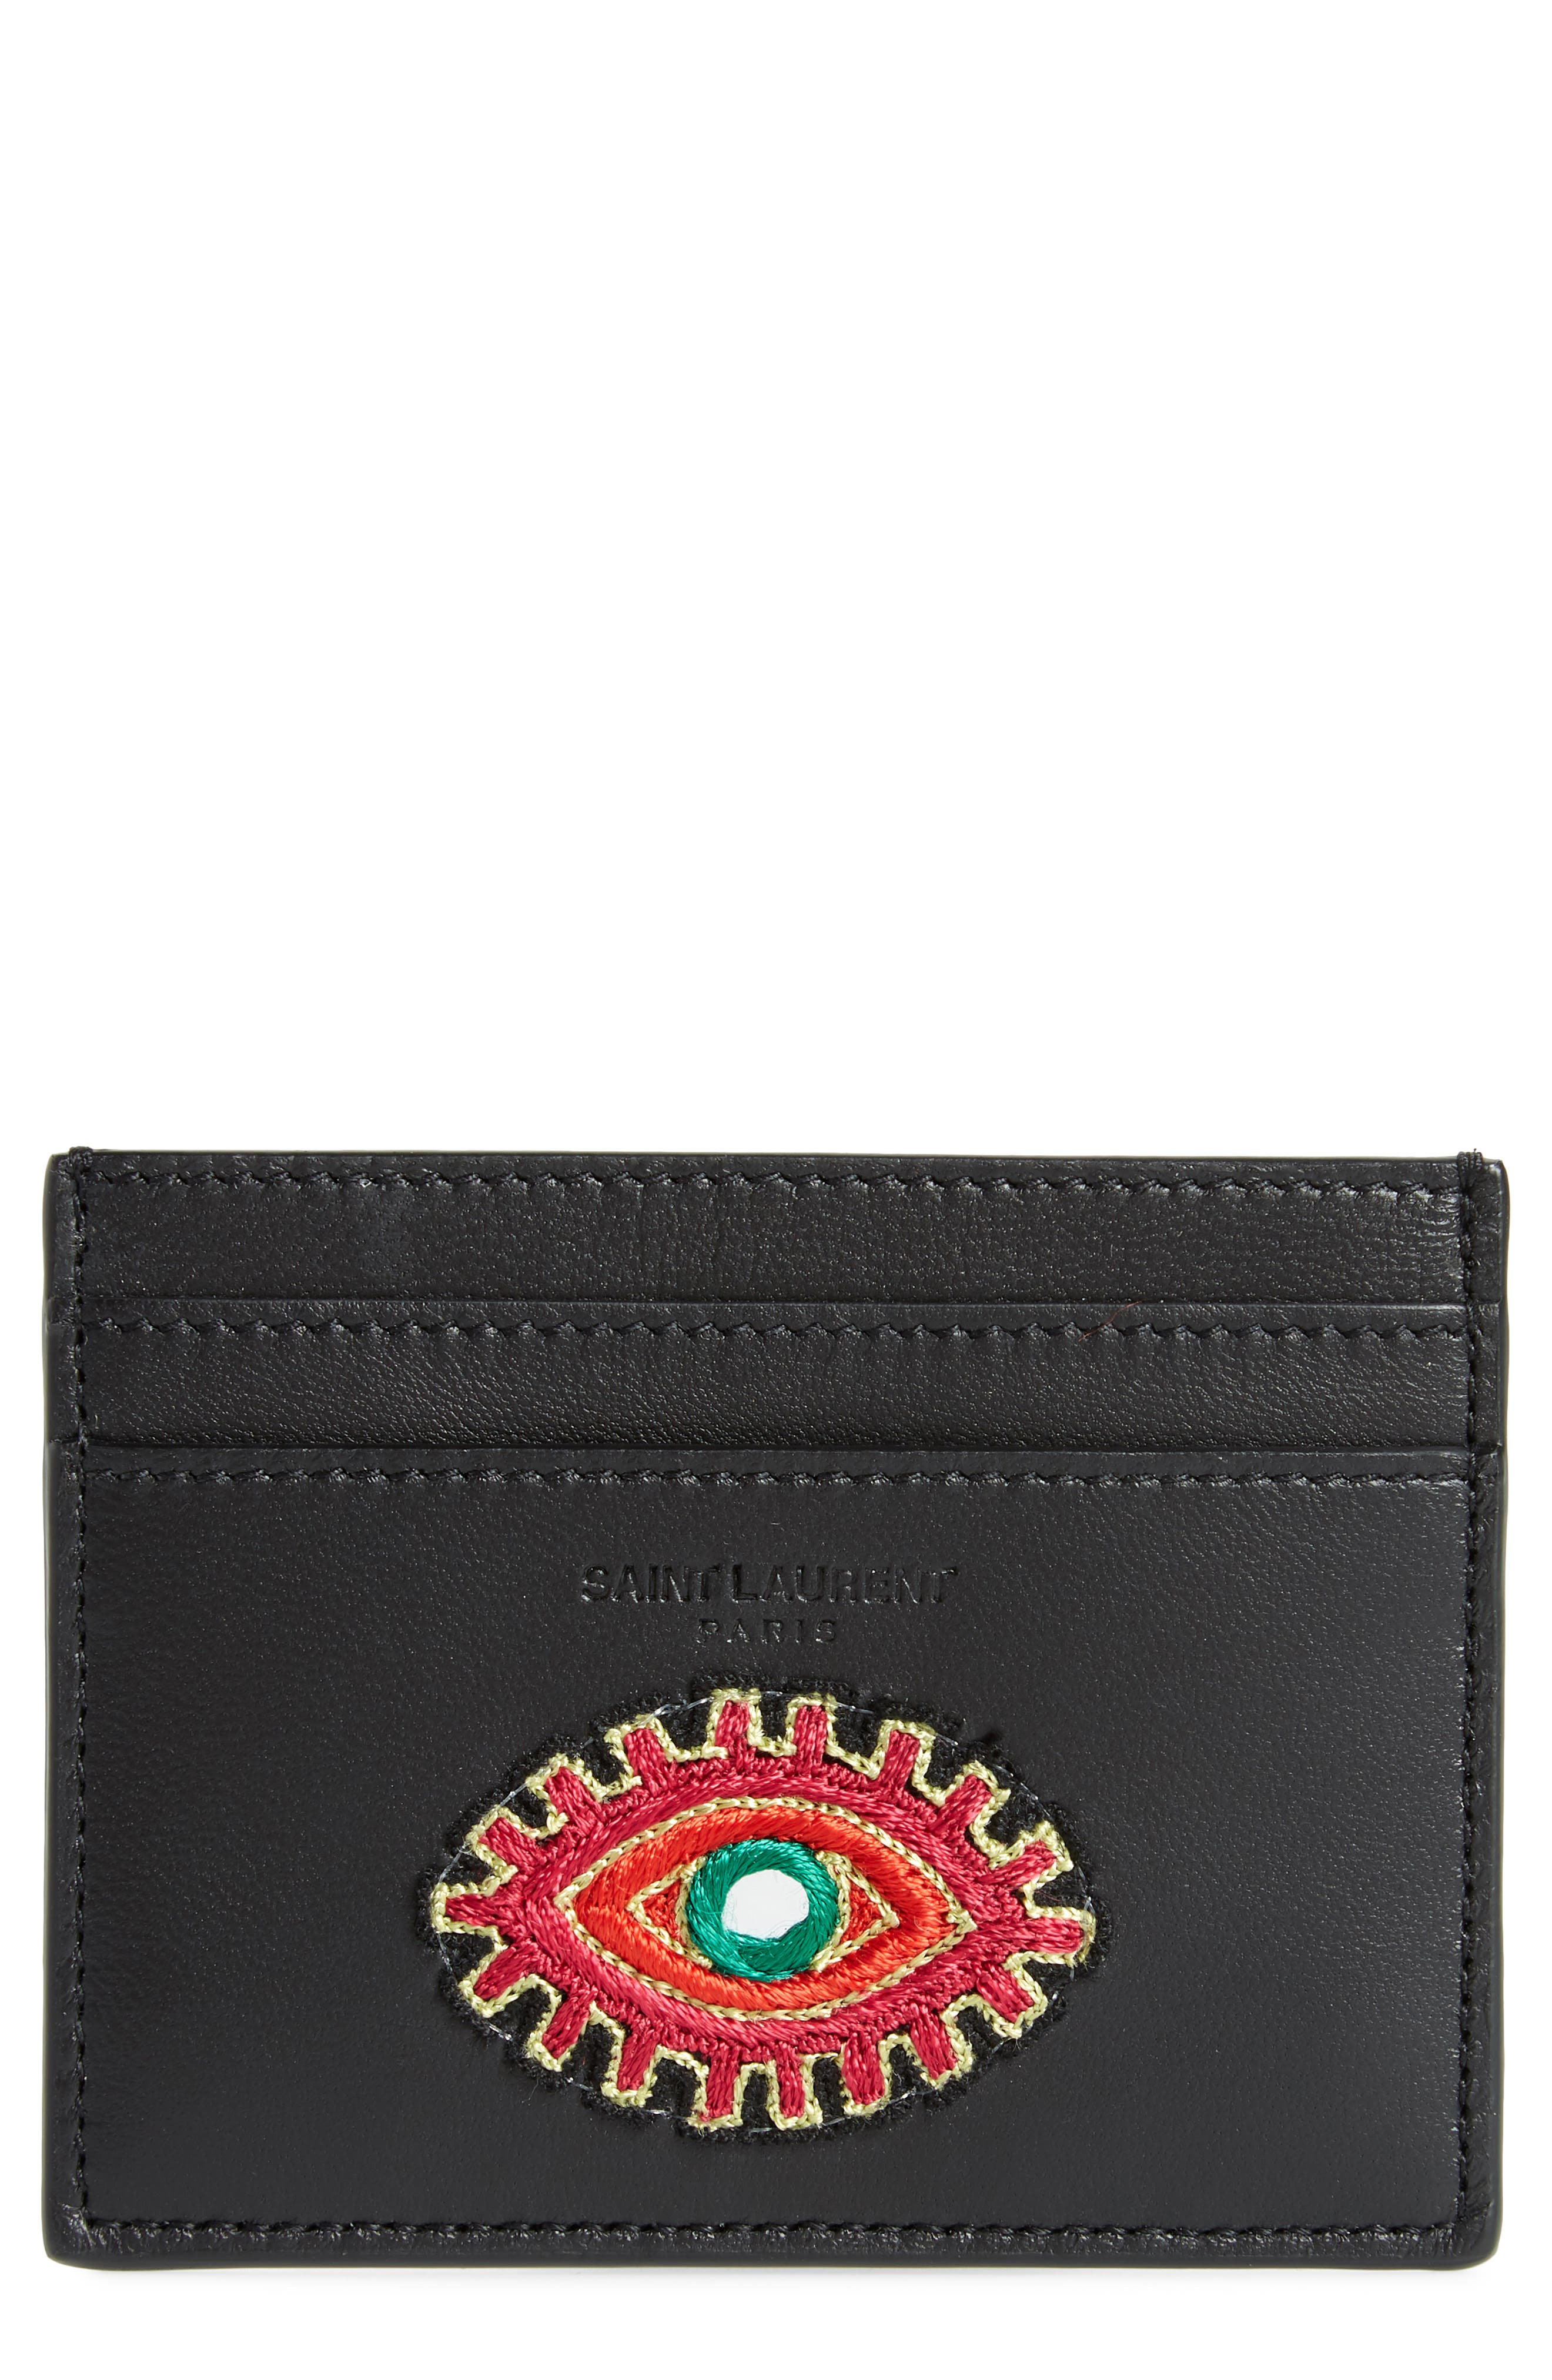 Alternate Image 1 Selected - Saint Laurent Embroidered Patch Leather Card Case